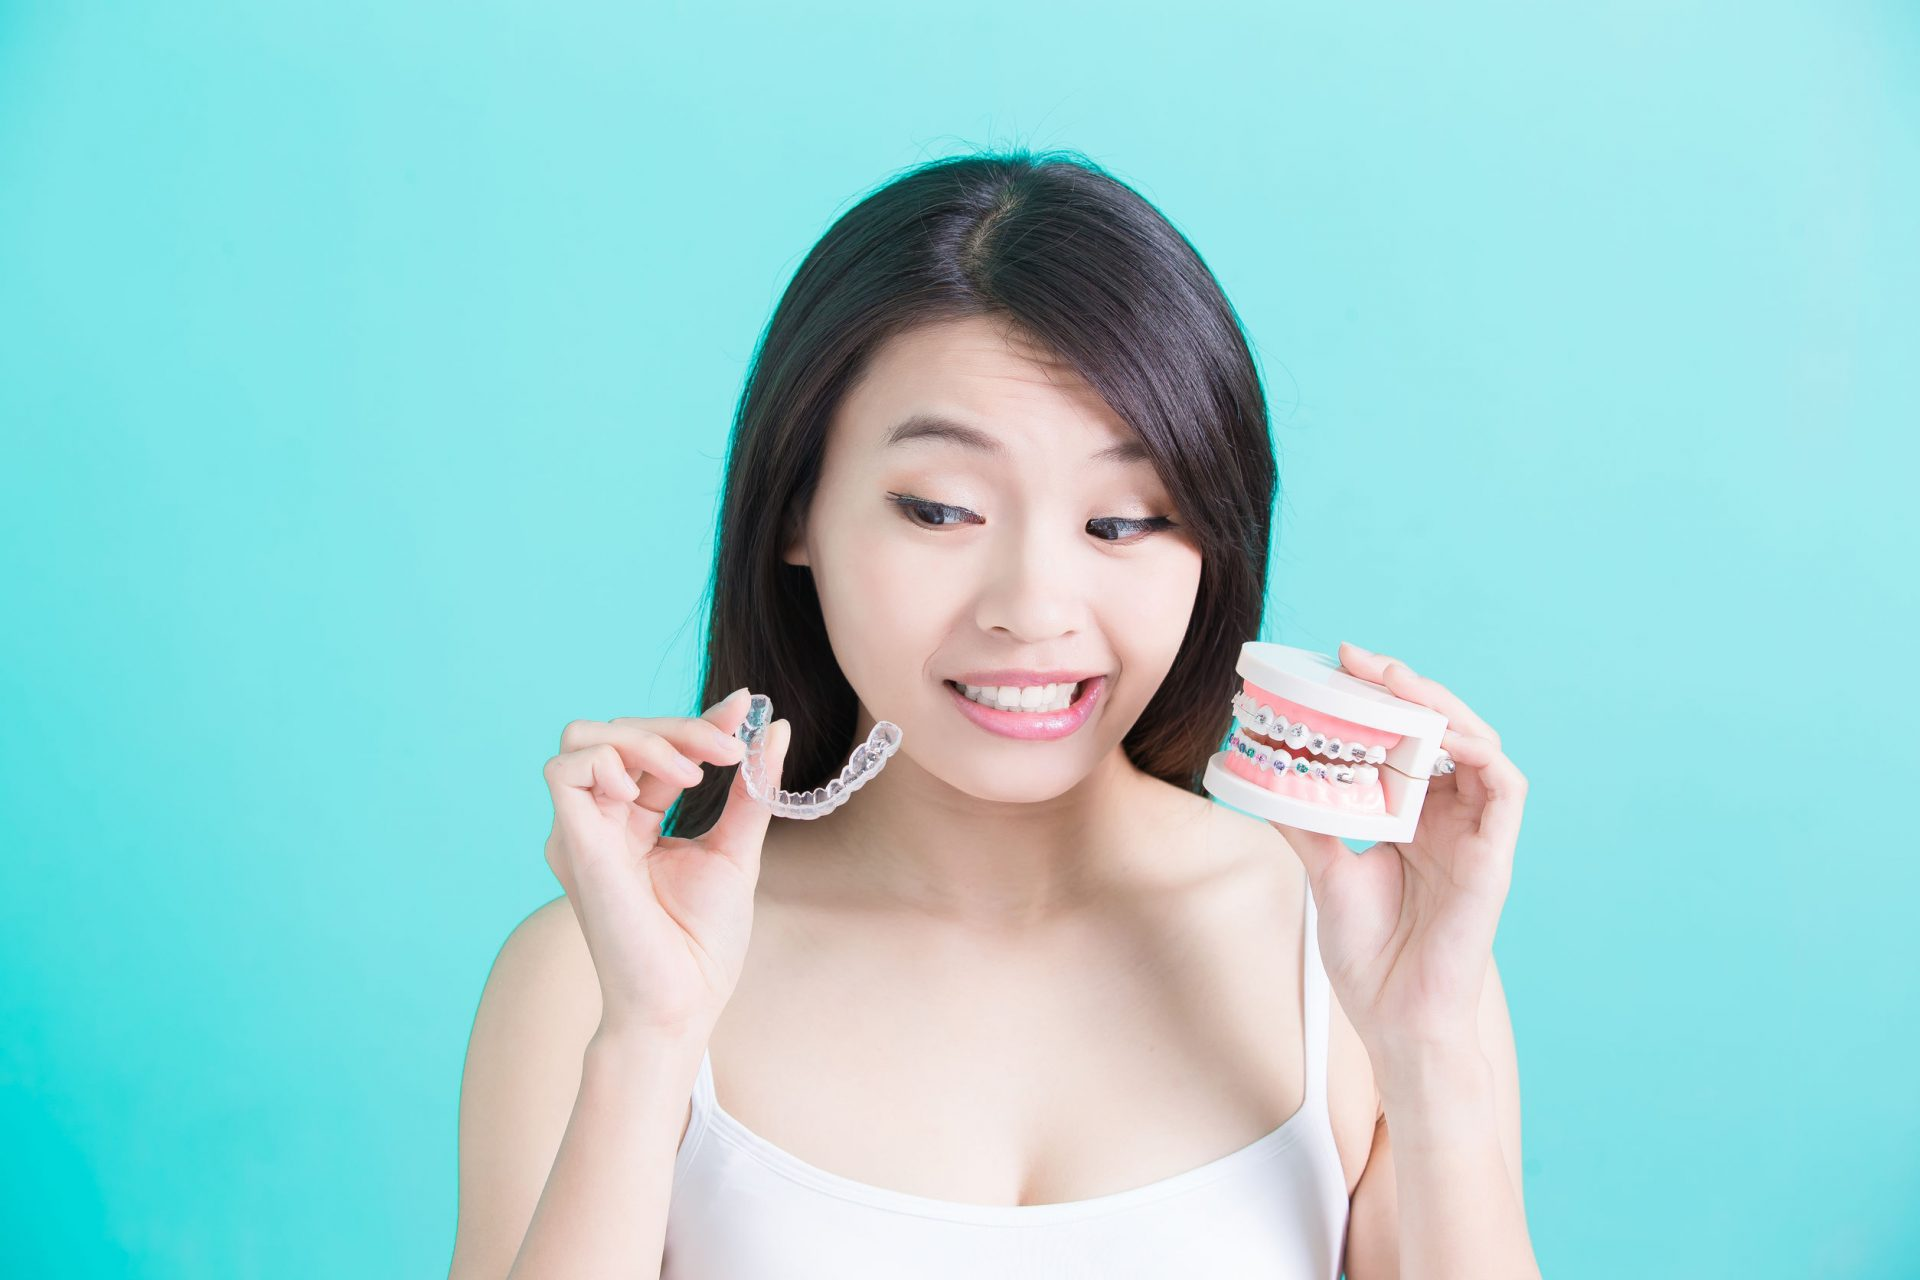 Woman holding Invisalign aligners and braces